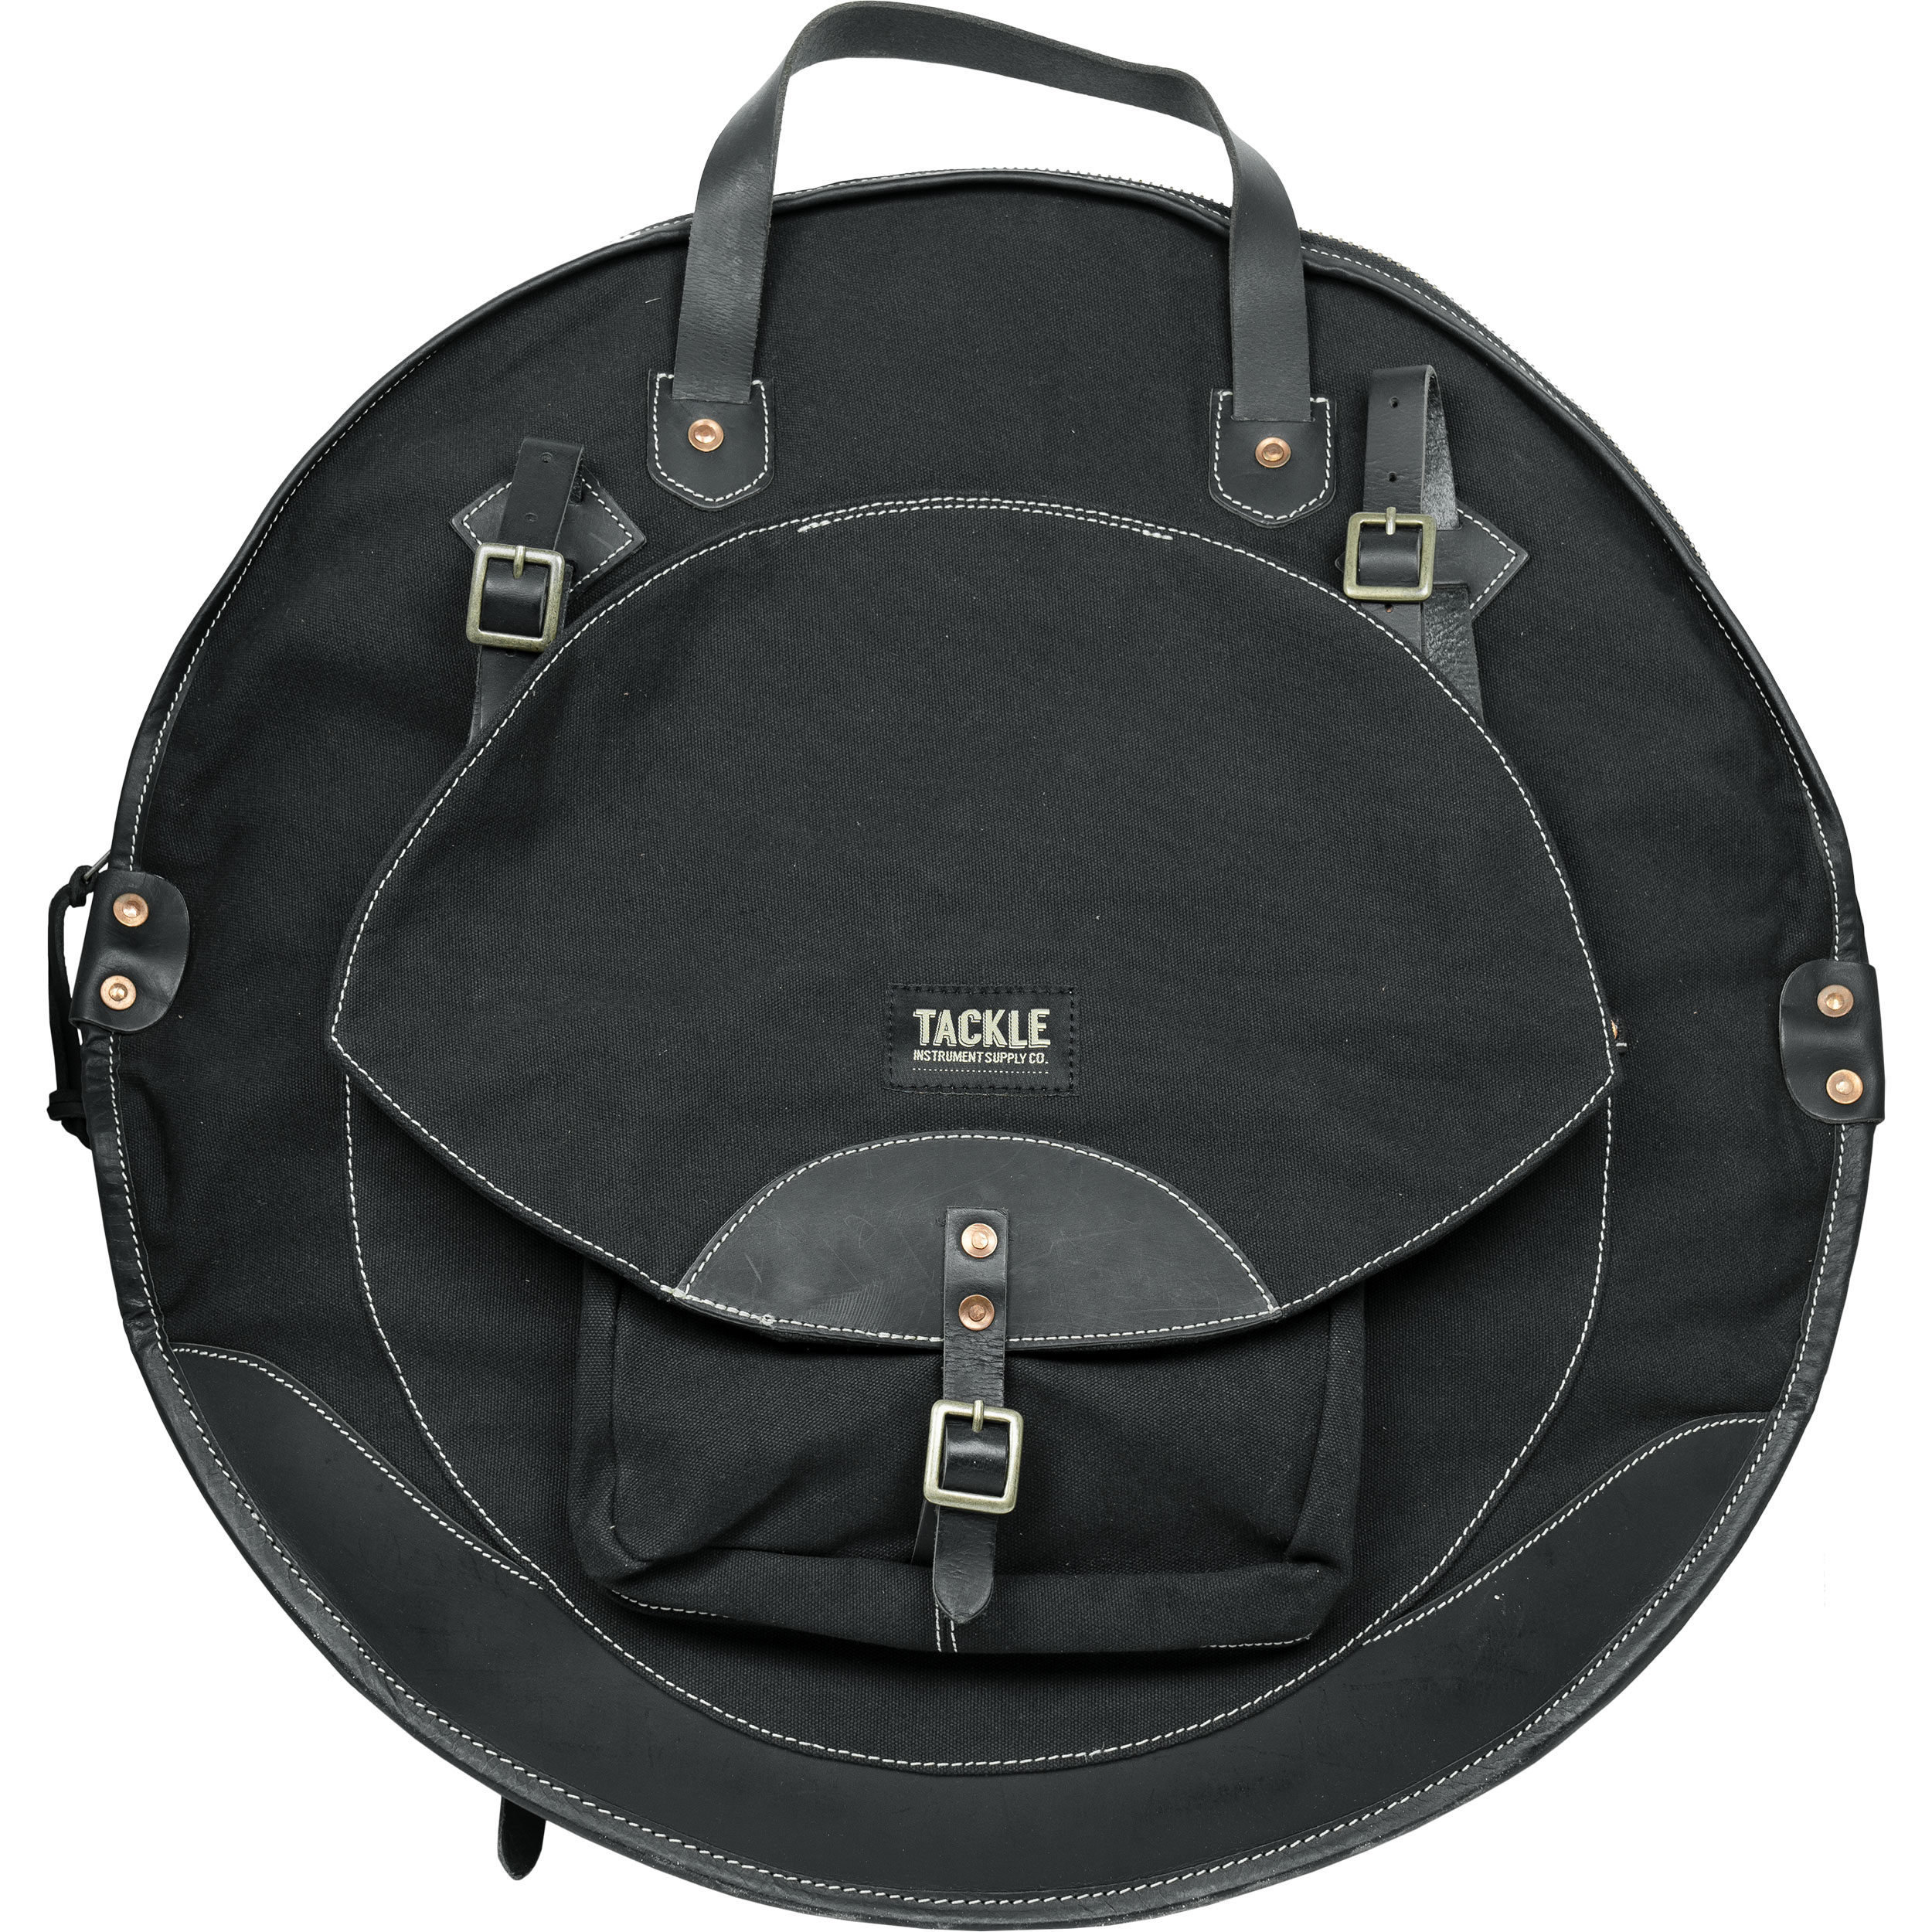 "Tackle Instrument Supply Co. 22"" Black Canvas/Black Leather Cymbal Bag"